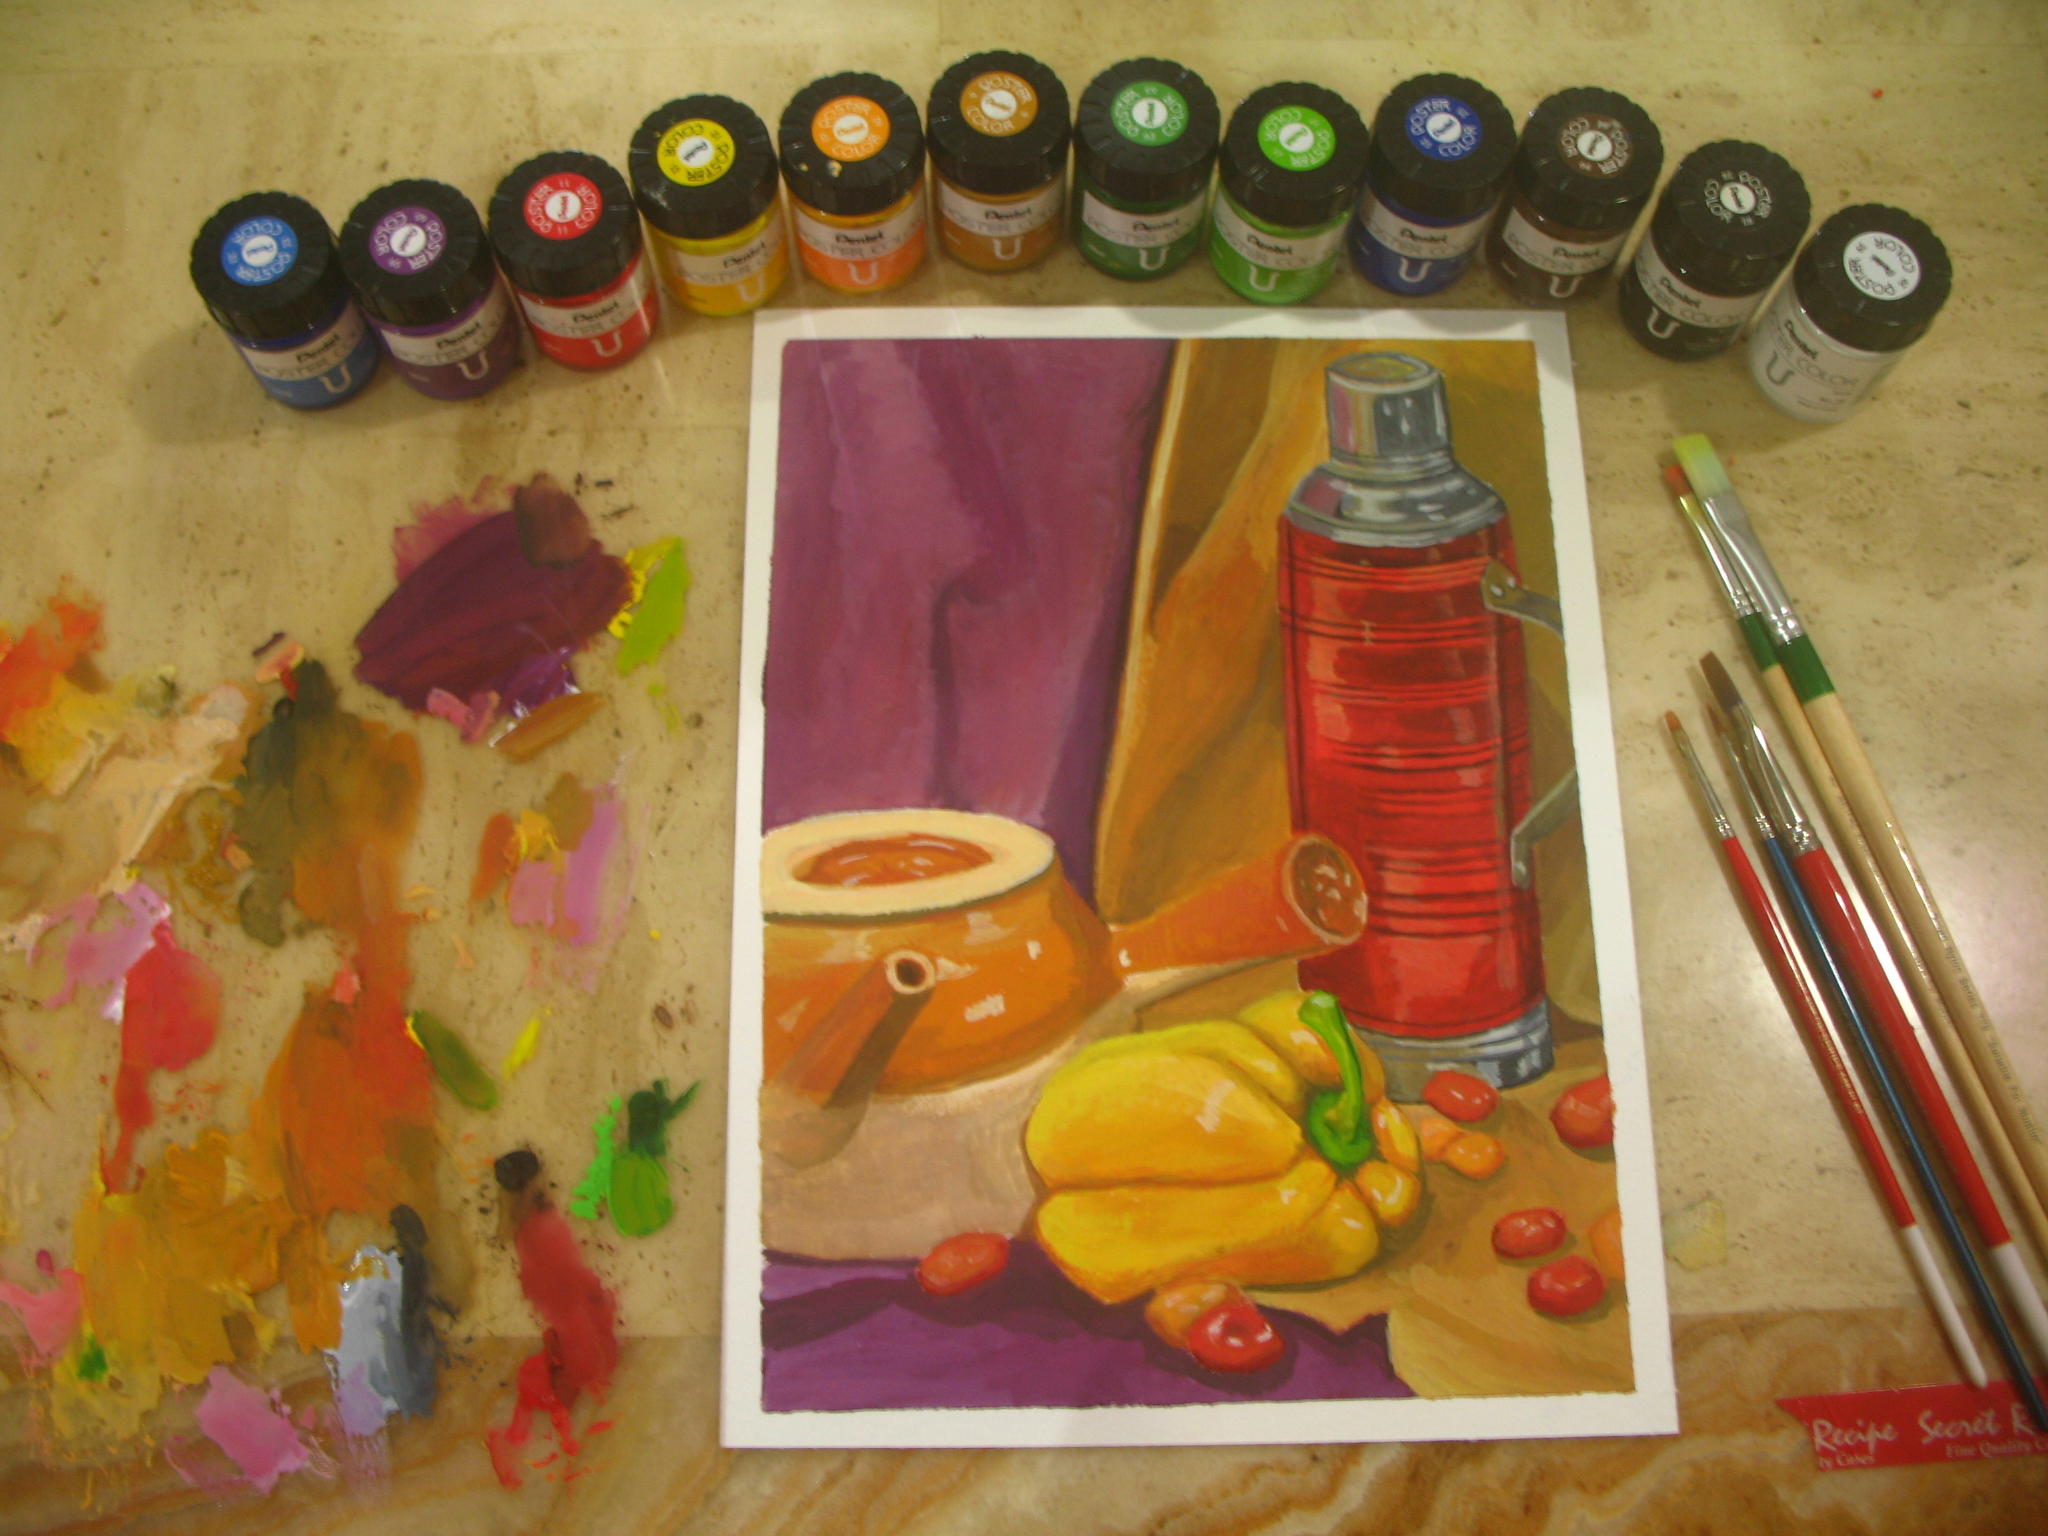 Still life drawing 2 (poster colour)